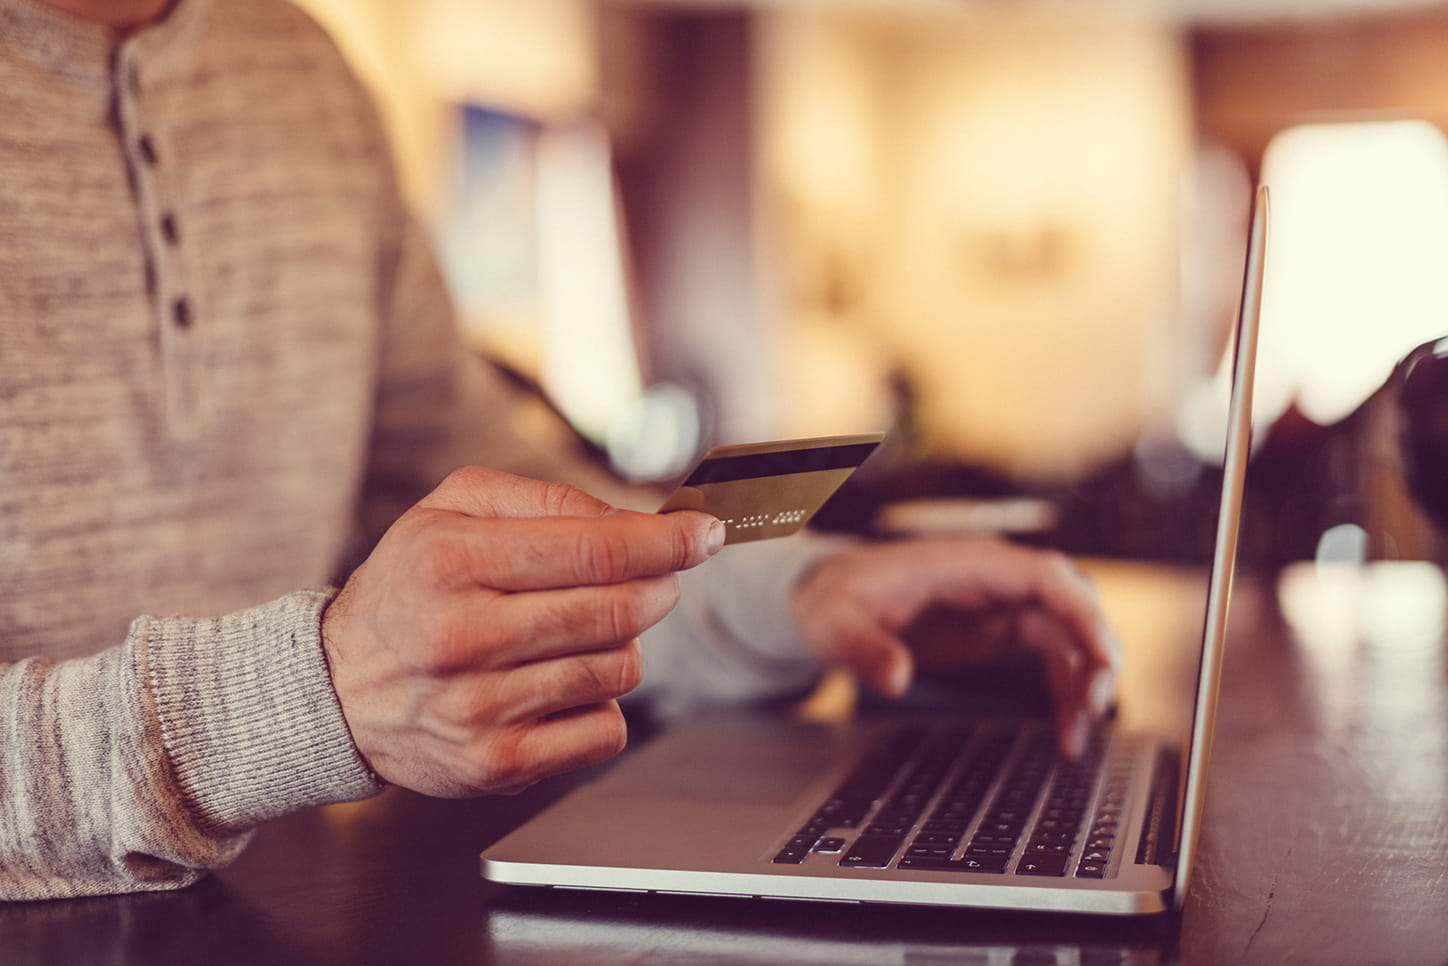 credit card in hand while typing on a laptop computer